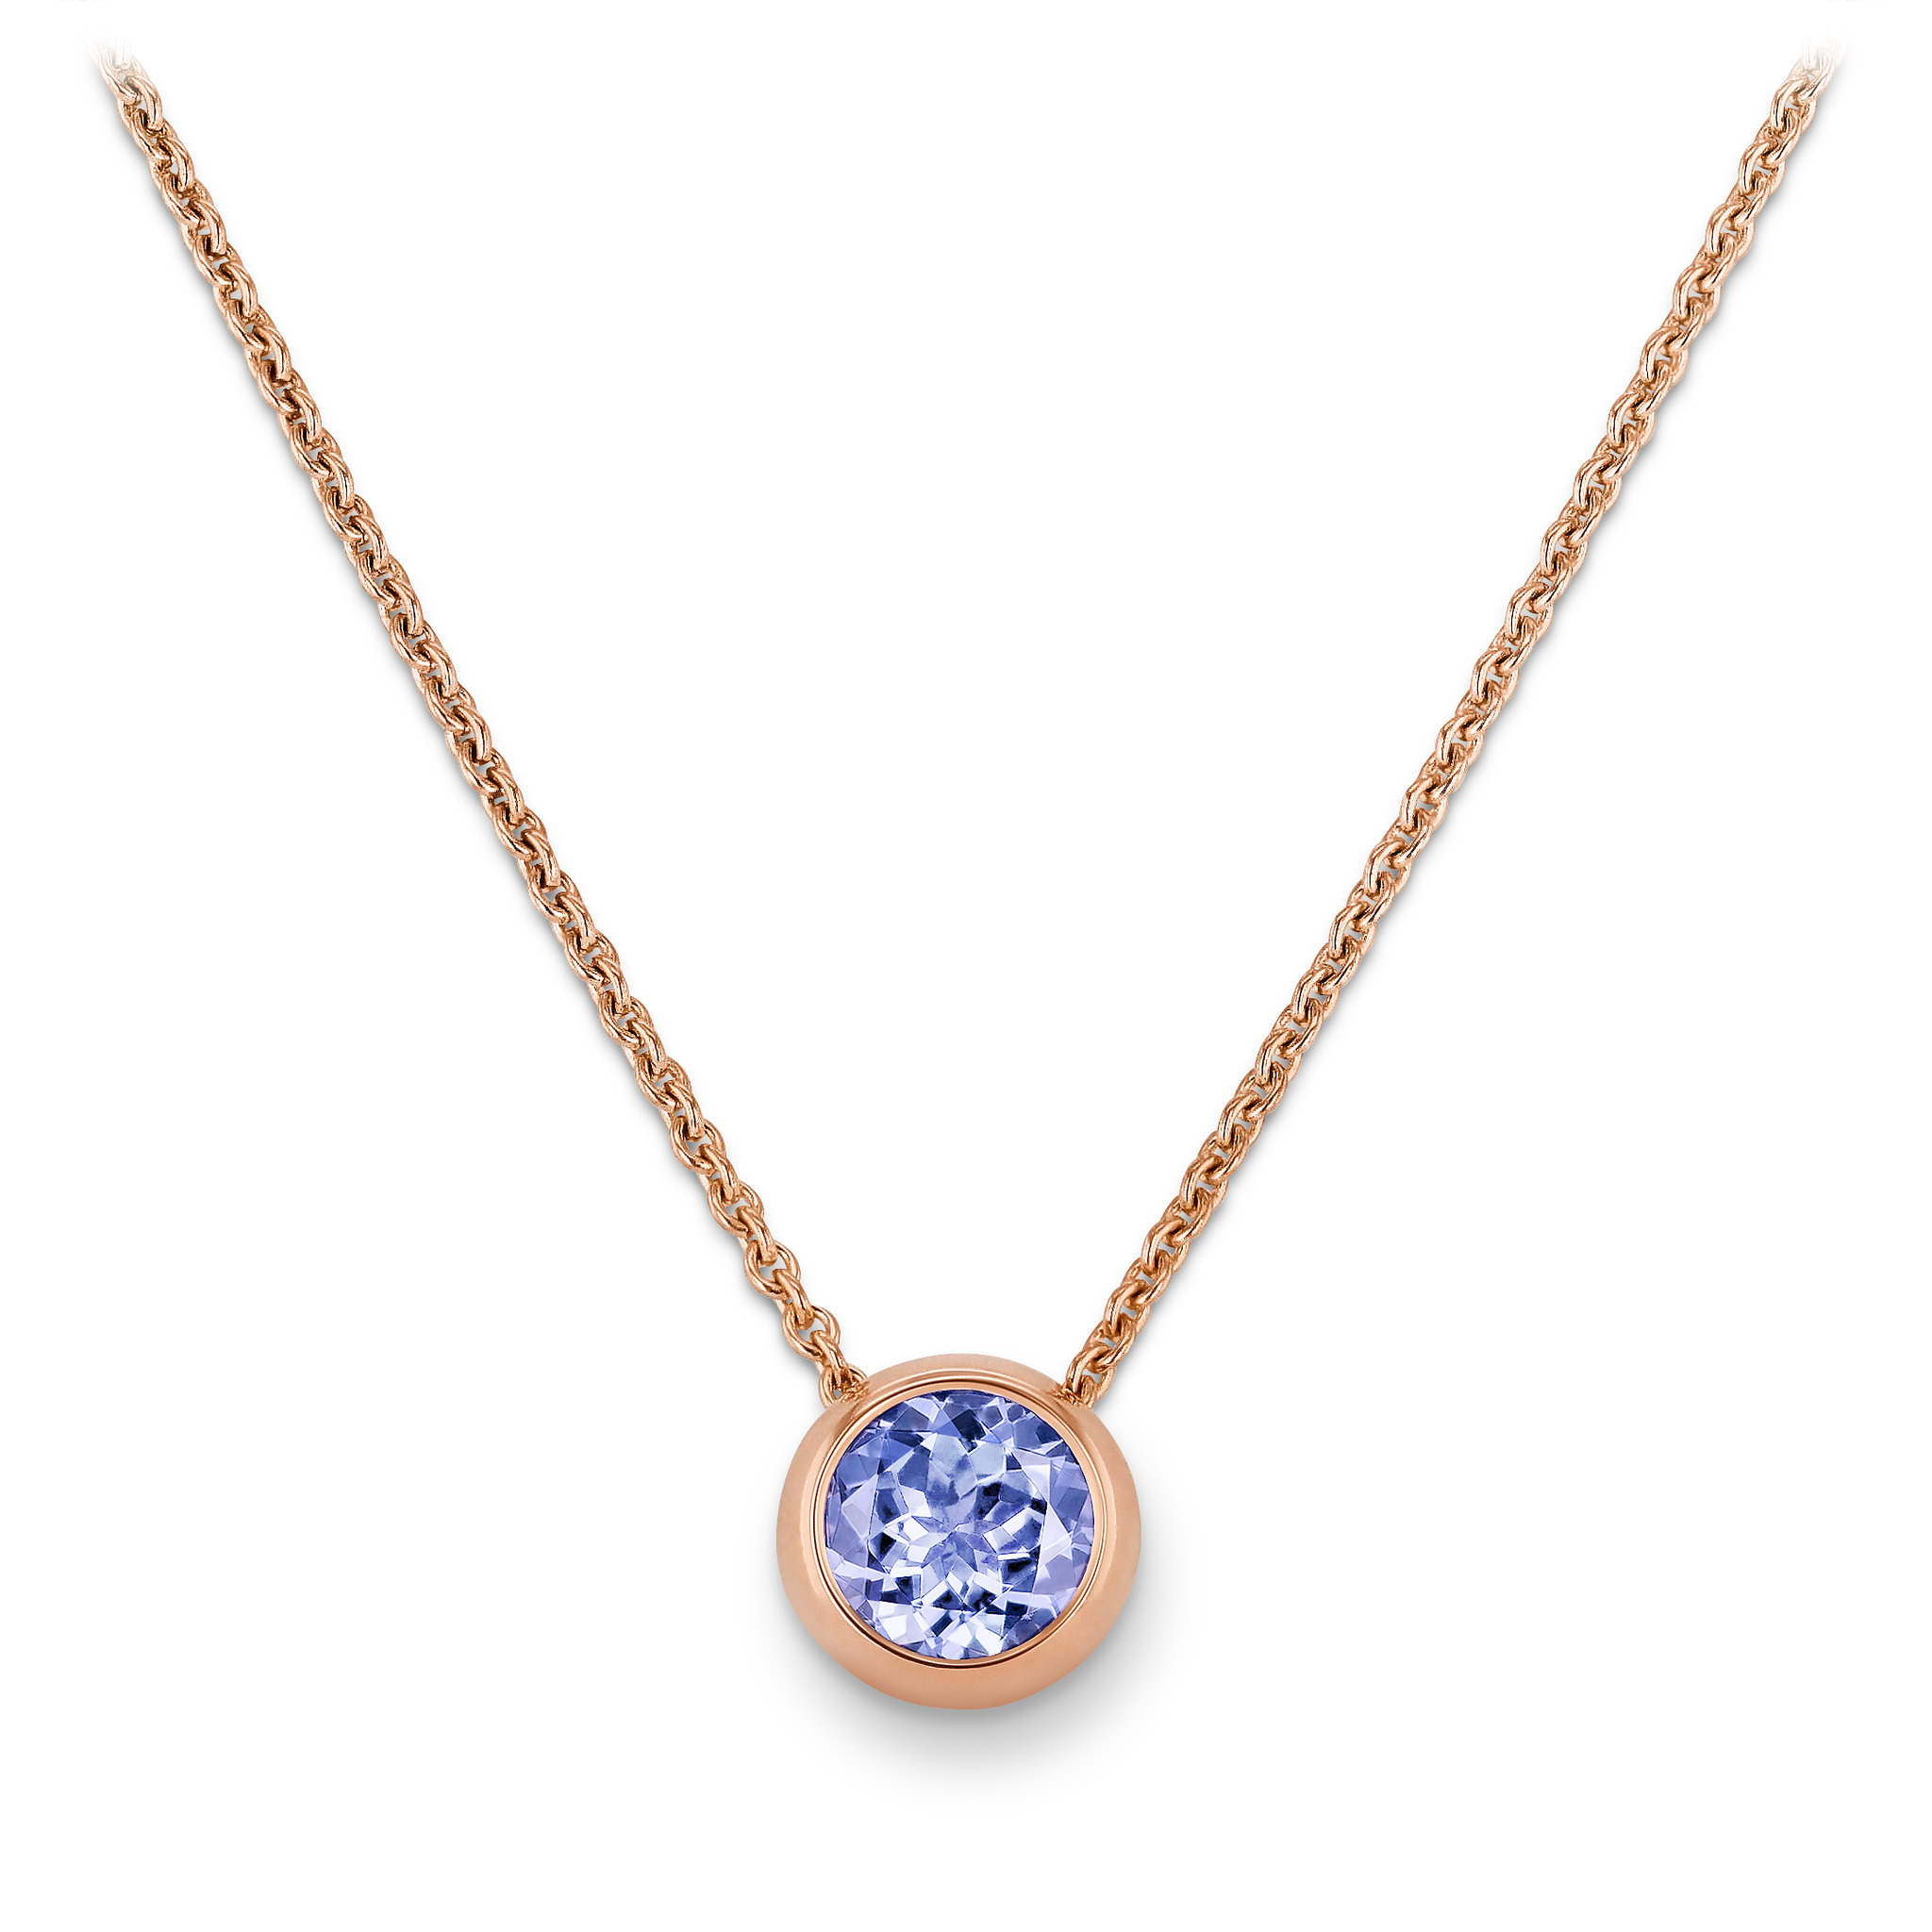 Necklace with tanzanite